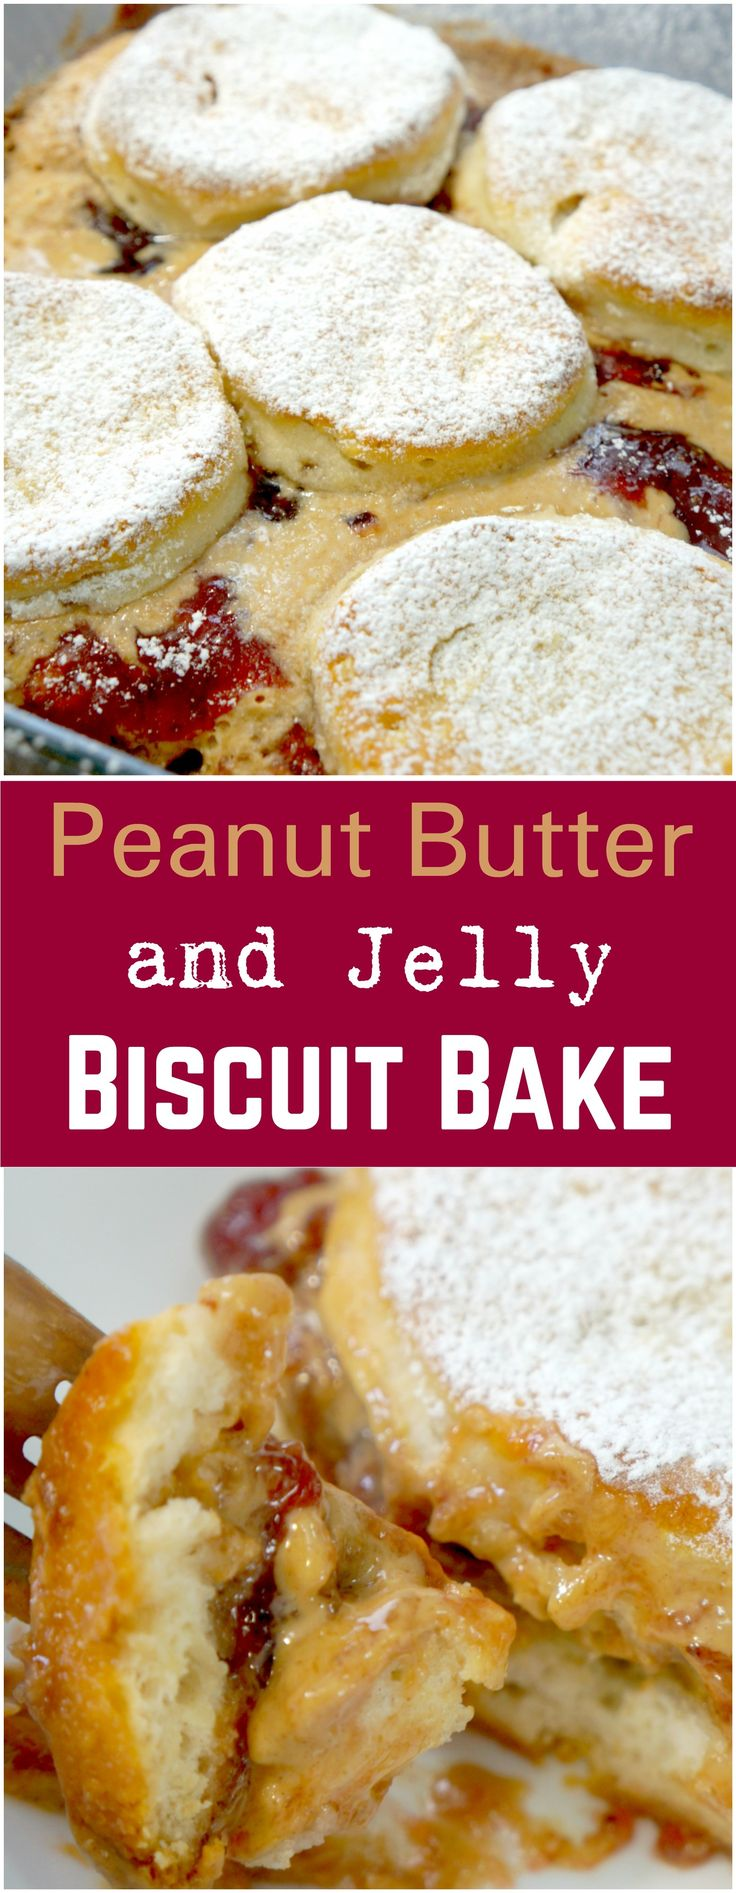 Peanut Butter and Jelly Biscuit Bake. Easy breakfast recipe.